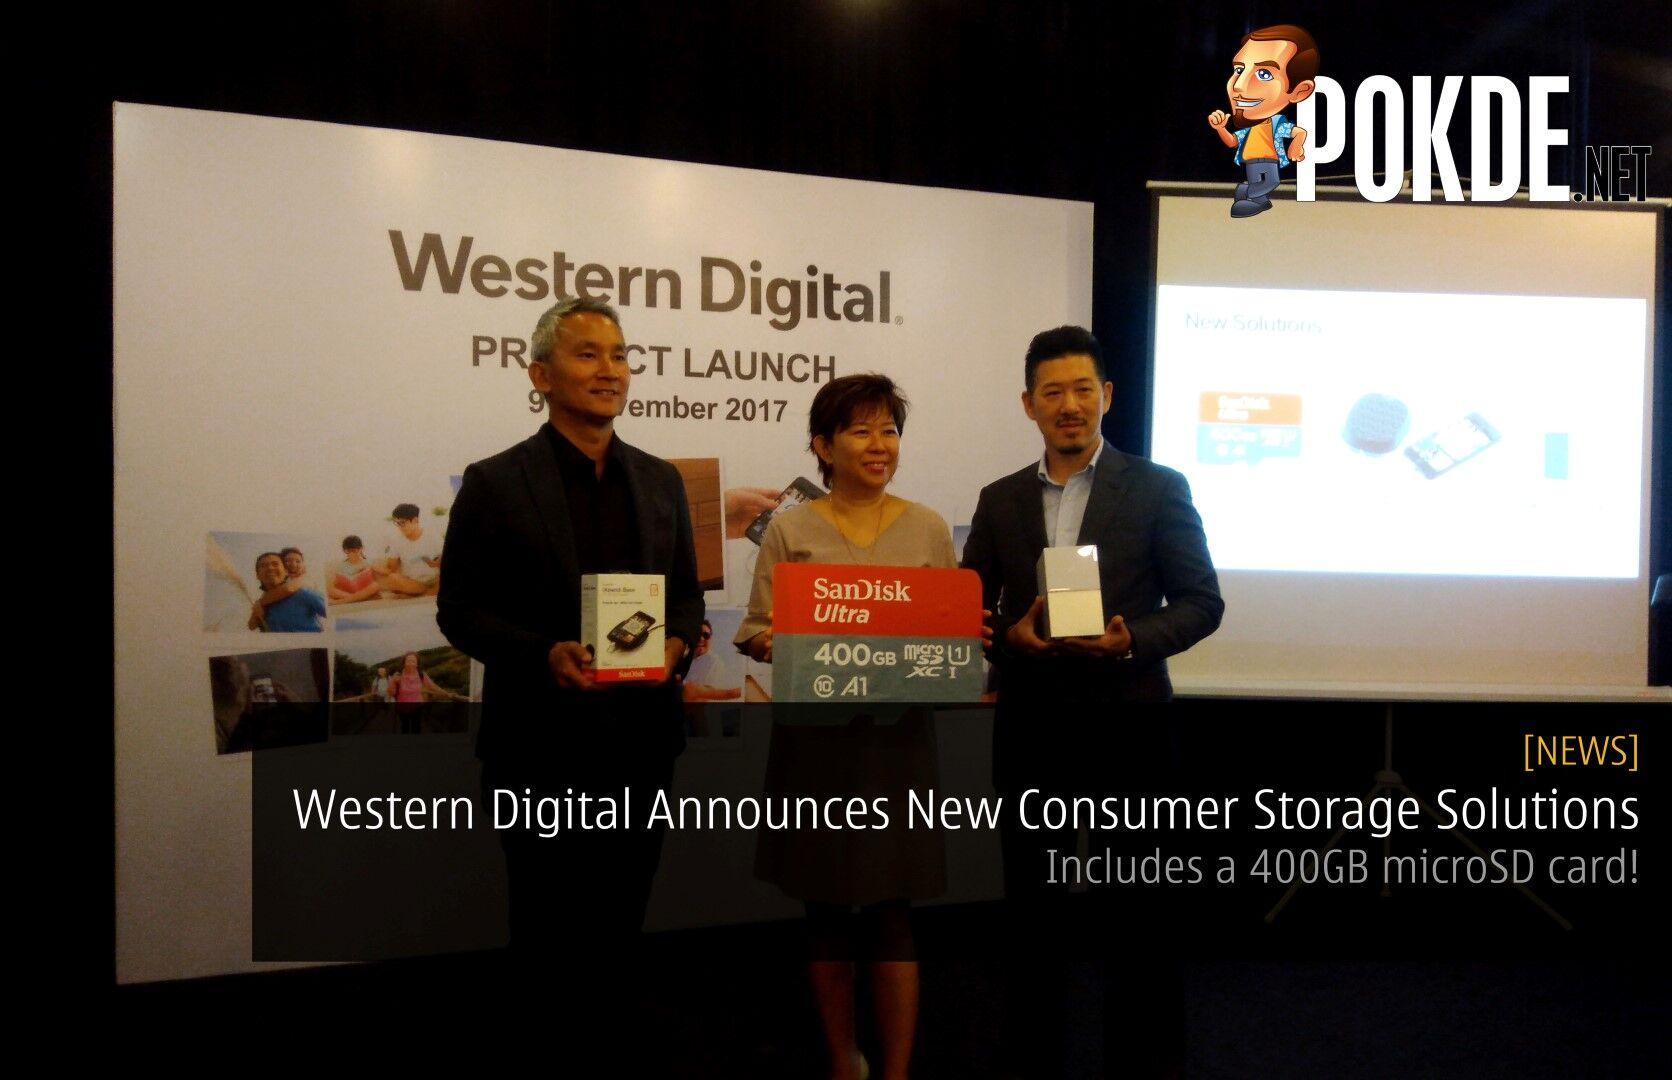 Western Digital Announces New Consumer Storage Solutions - Includes a 400GB microSD card! 25